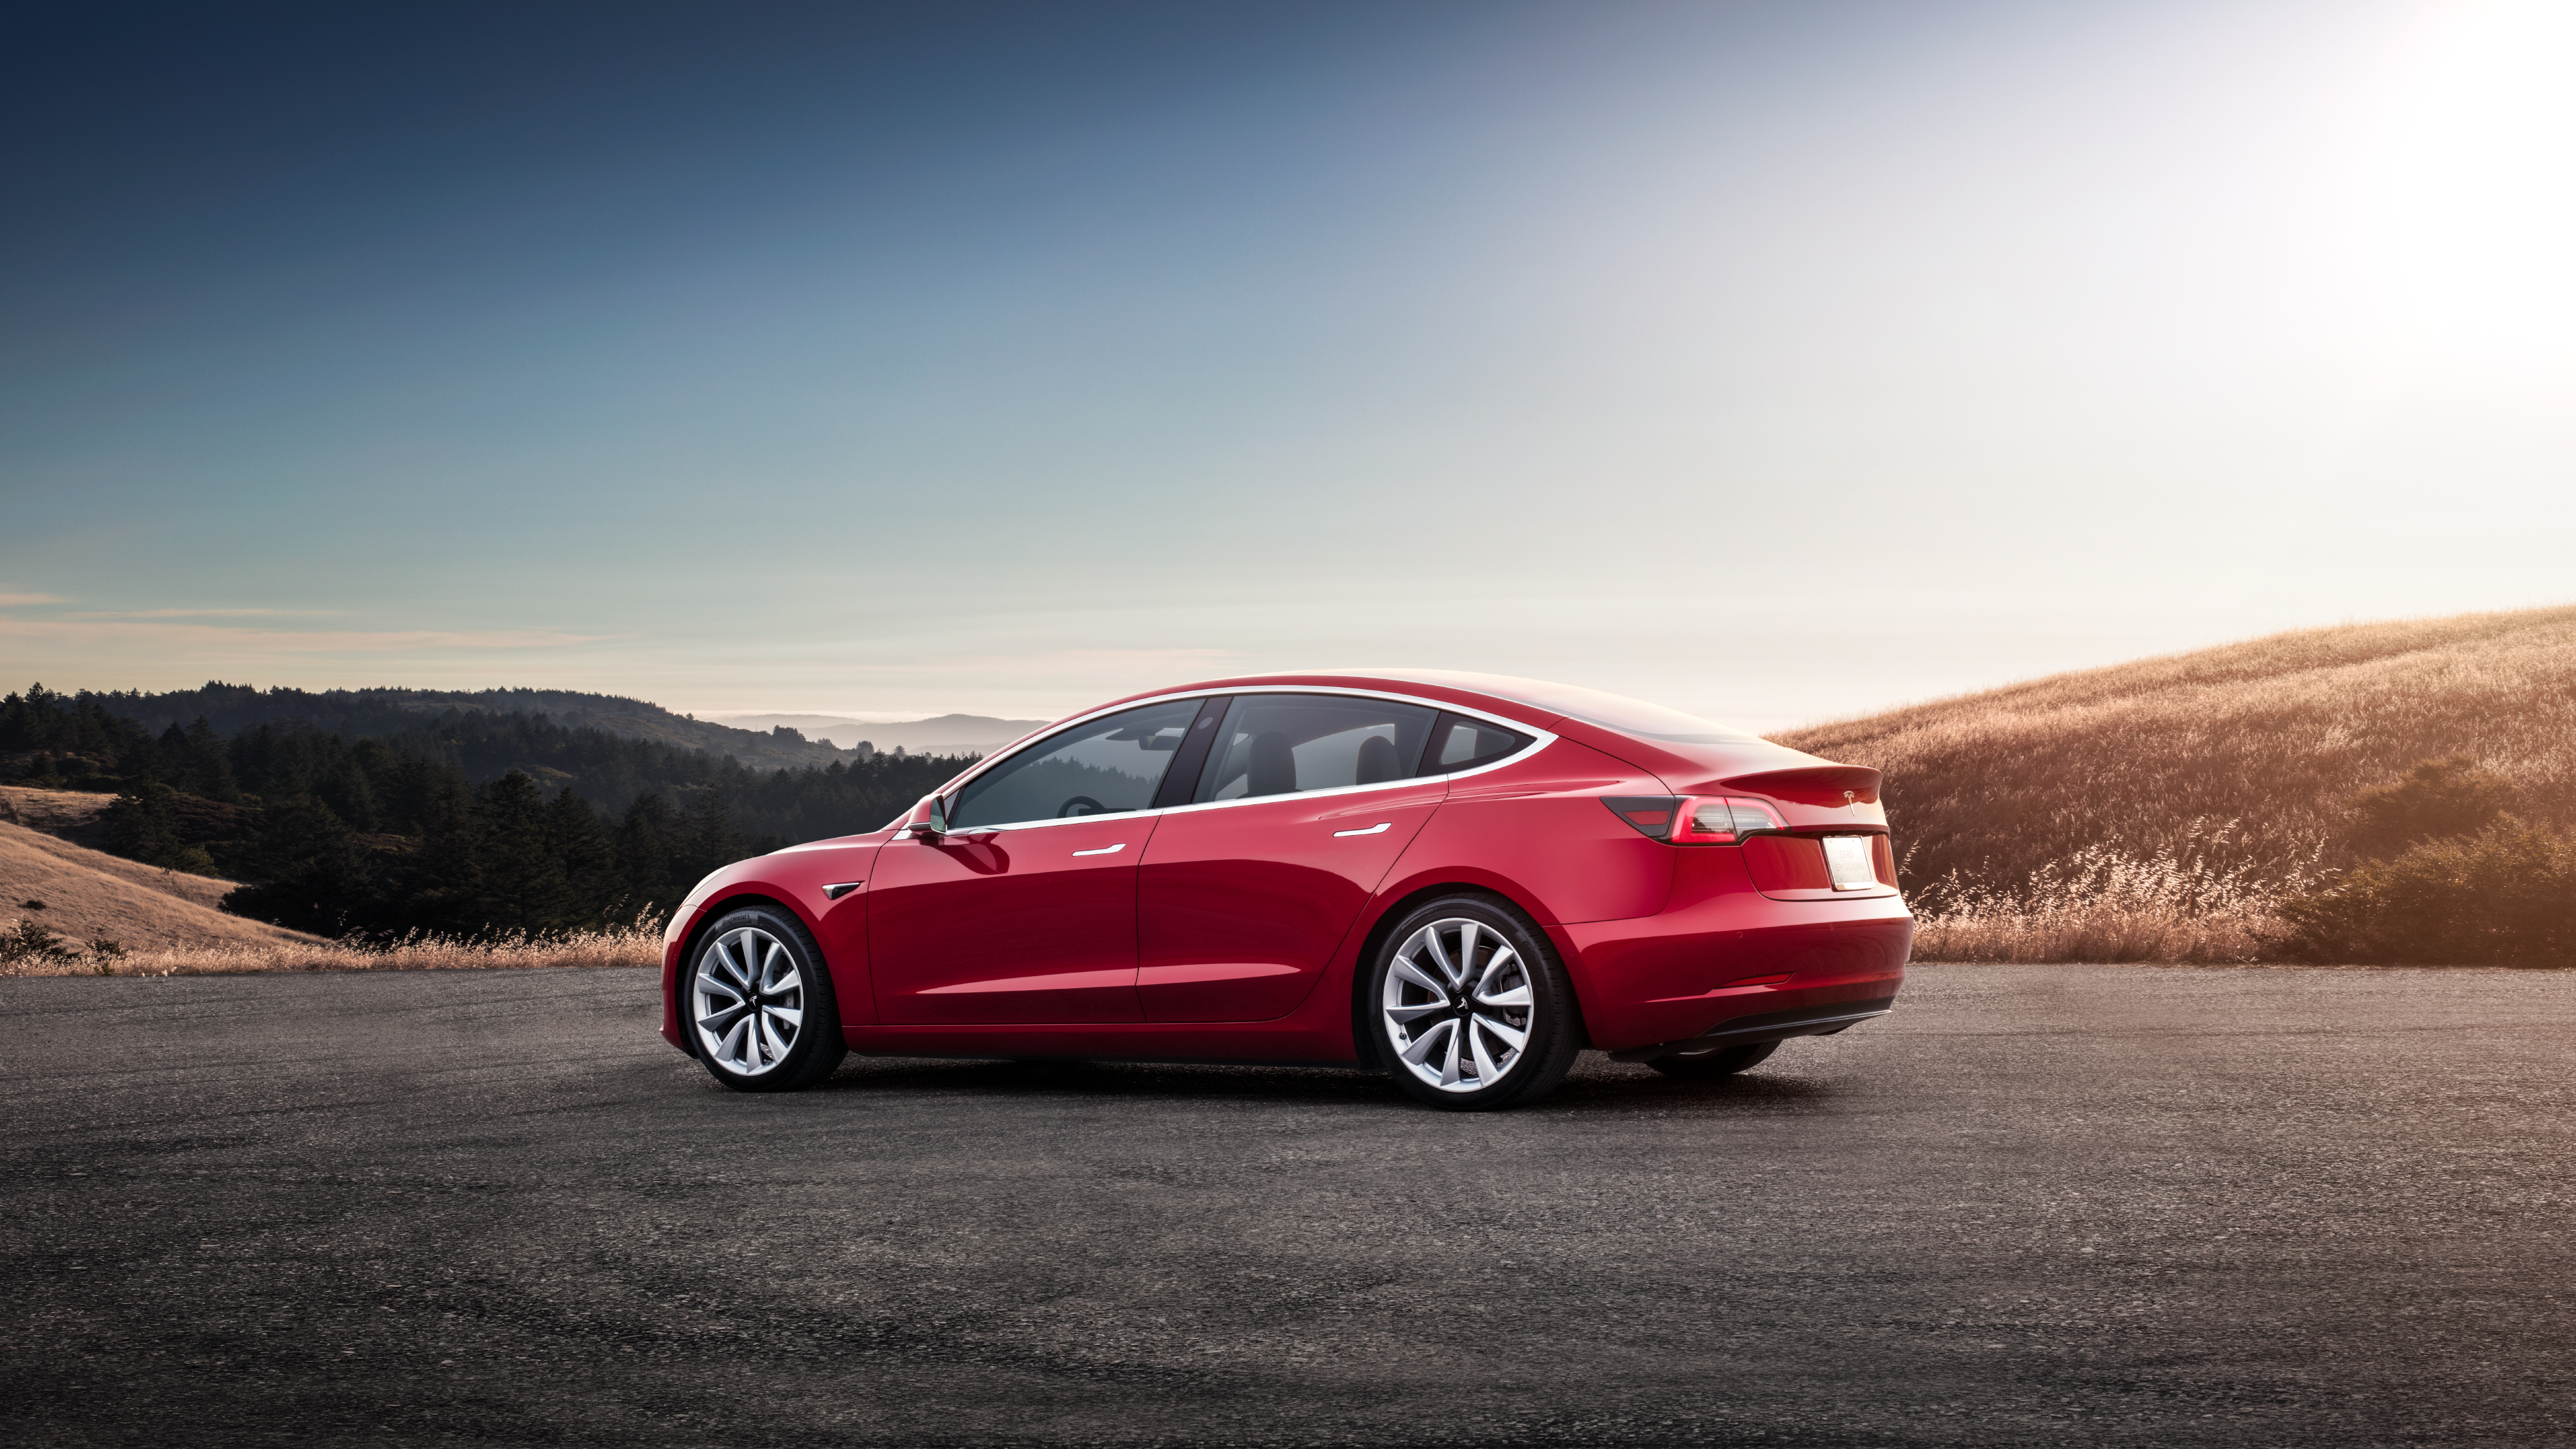 Tesla Model 3: Long Range rear-drive culled overseas | CarAdvice